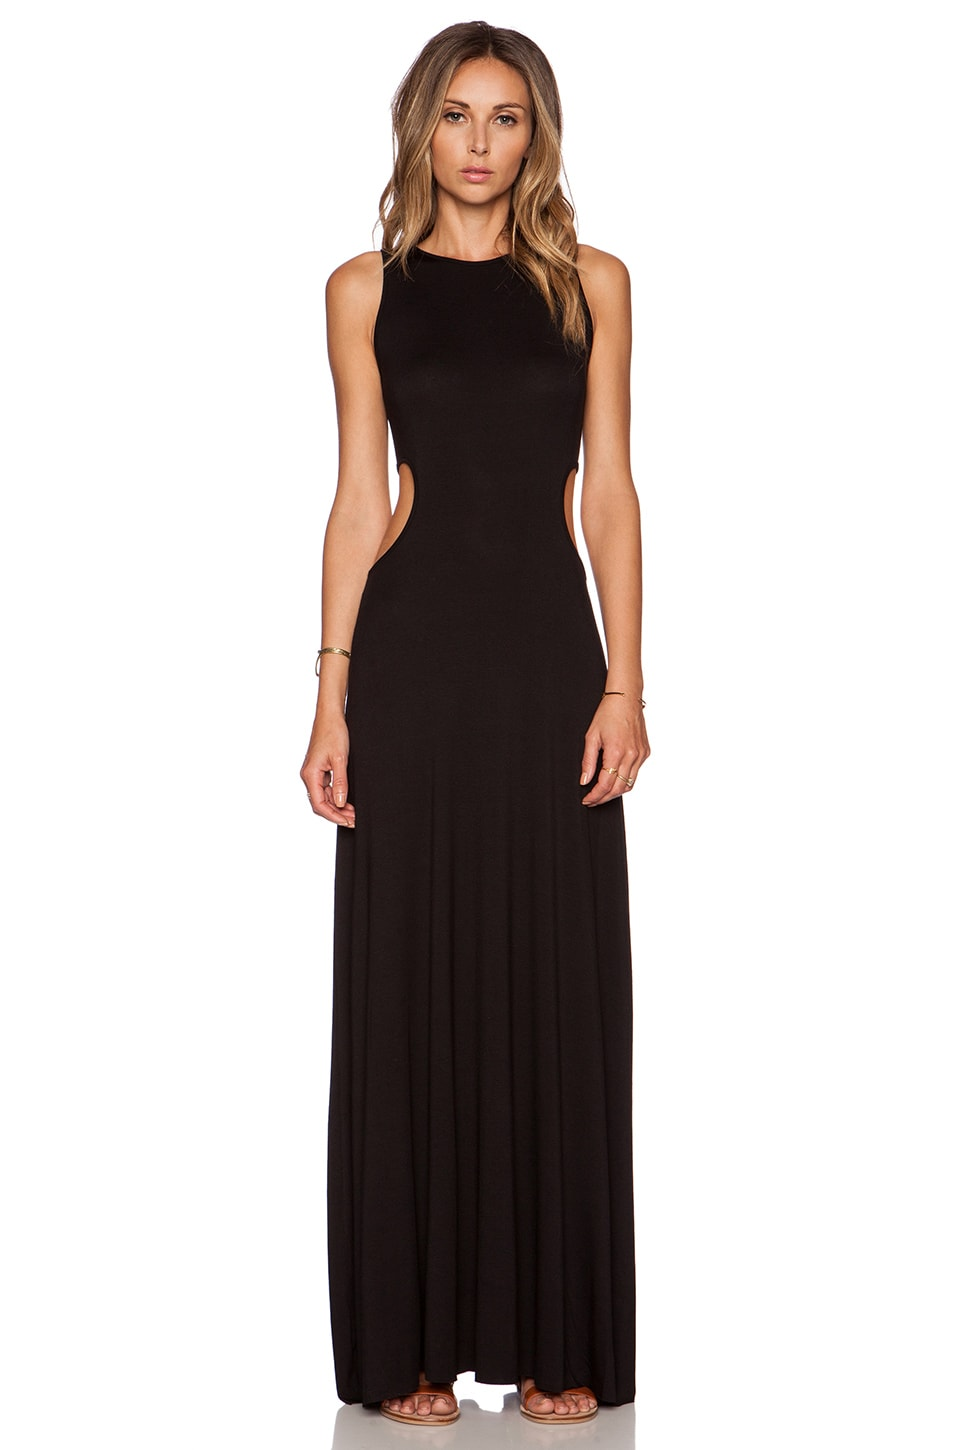 Clayton Holly Dress in Black